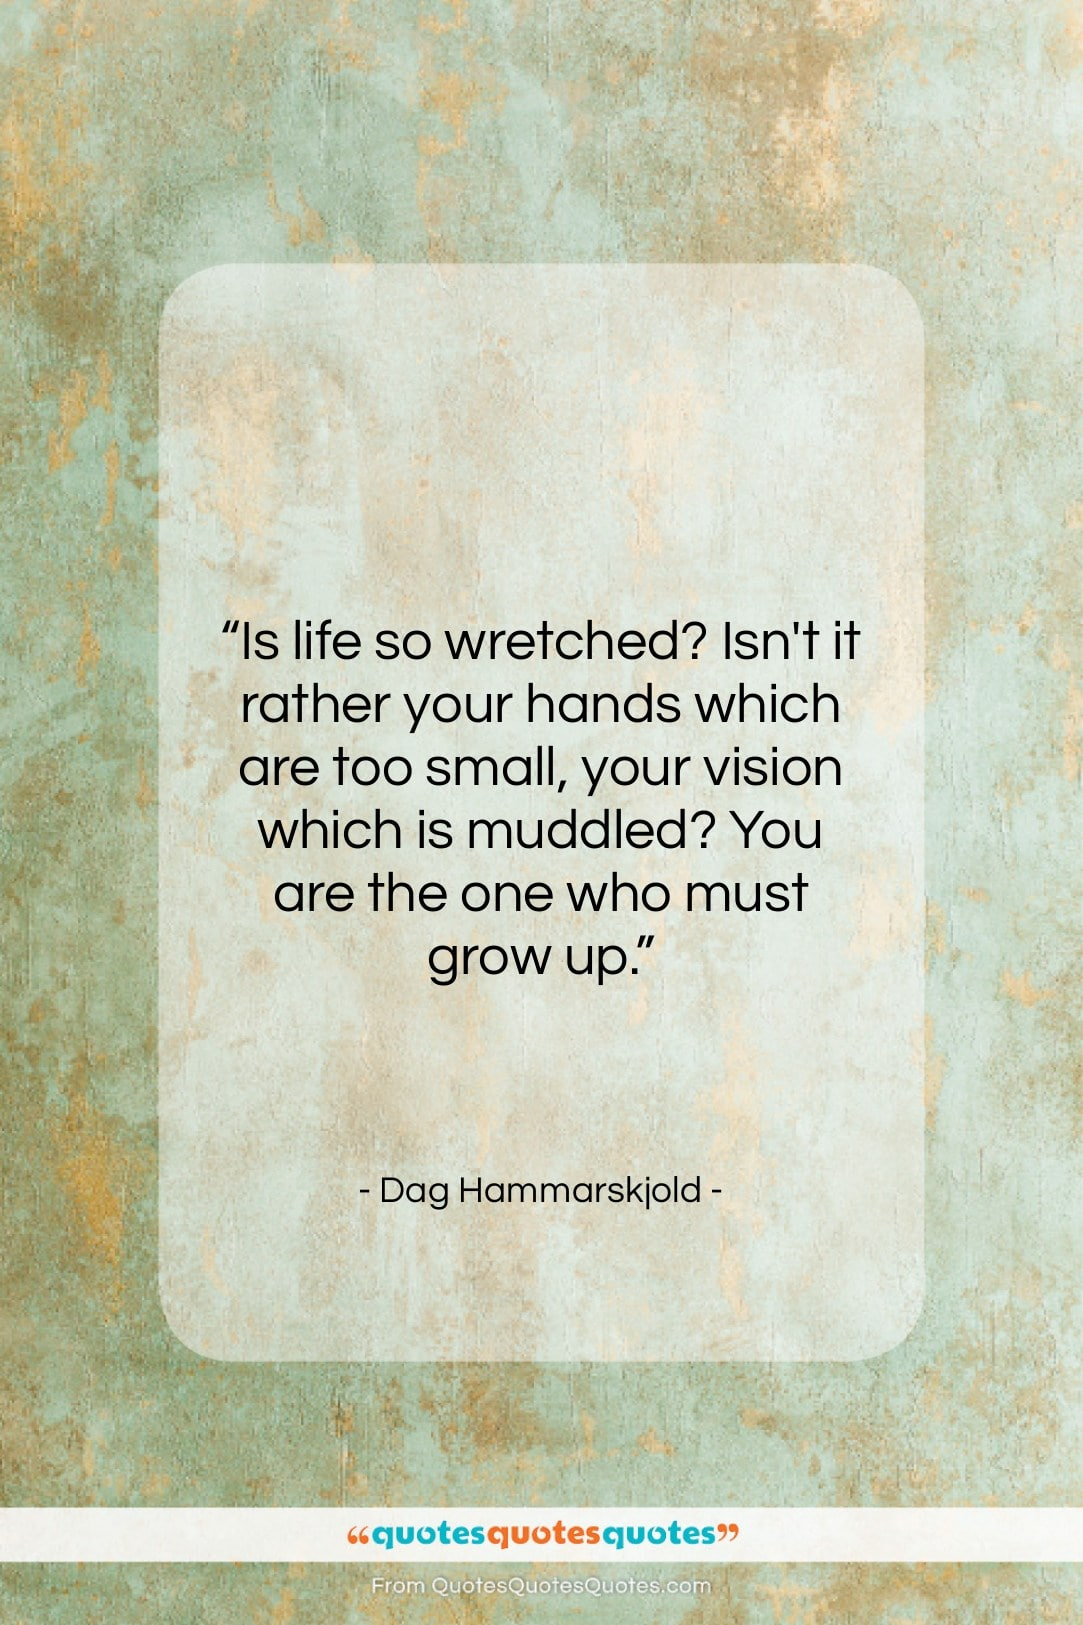 """Dag Hammarskjold quote: """"Is life so wretched? Isn't it rather…""""- at QuotesQuotesQuotes.com"""